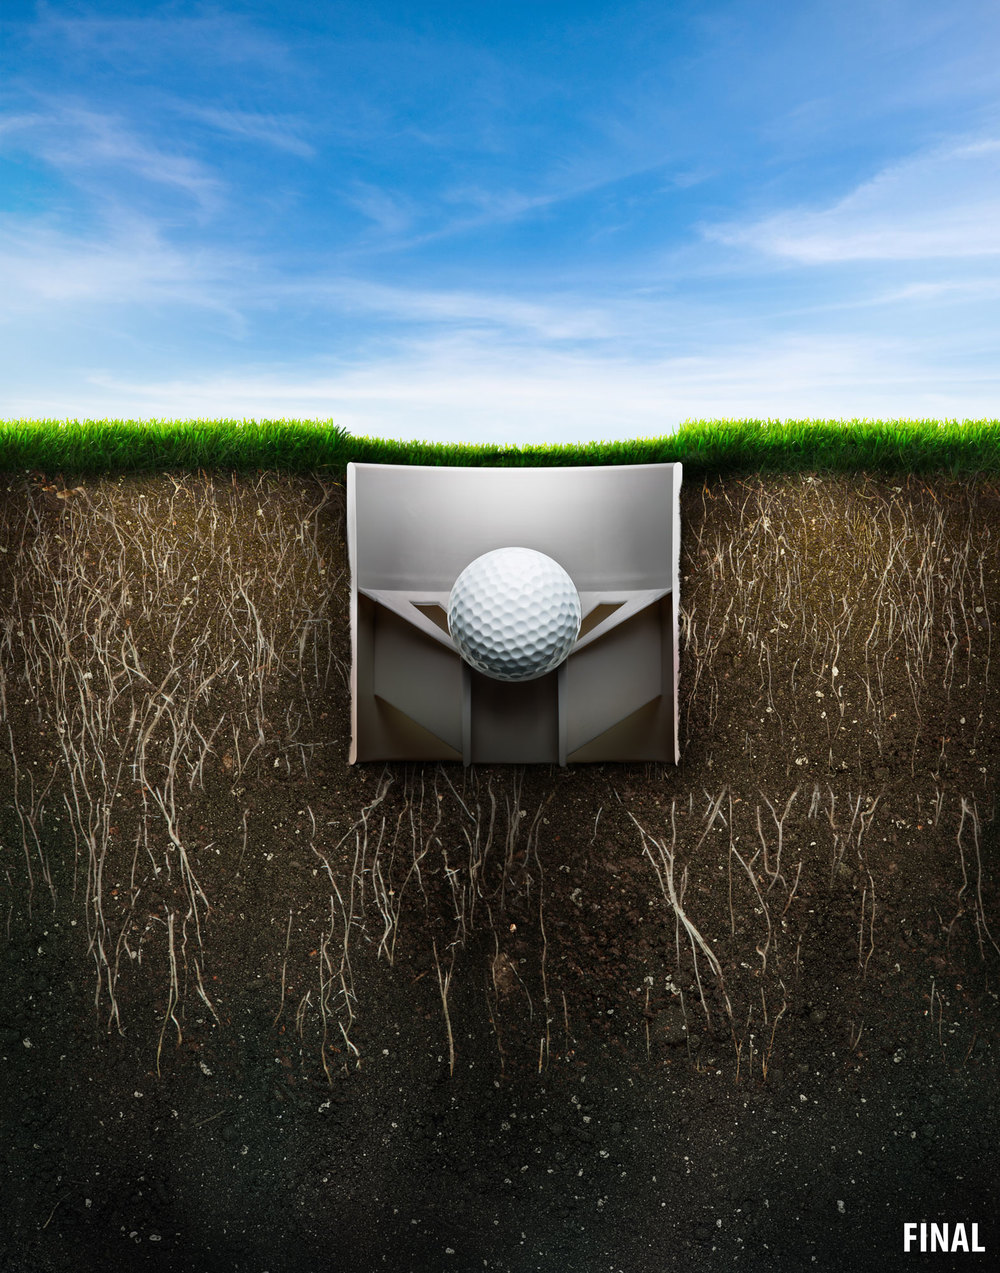 professional composite image of golf ball in golf hole view from side underground